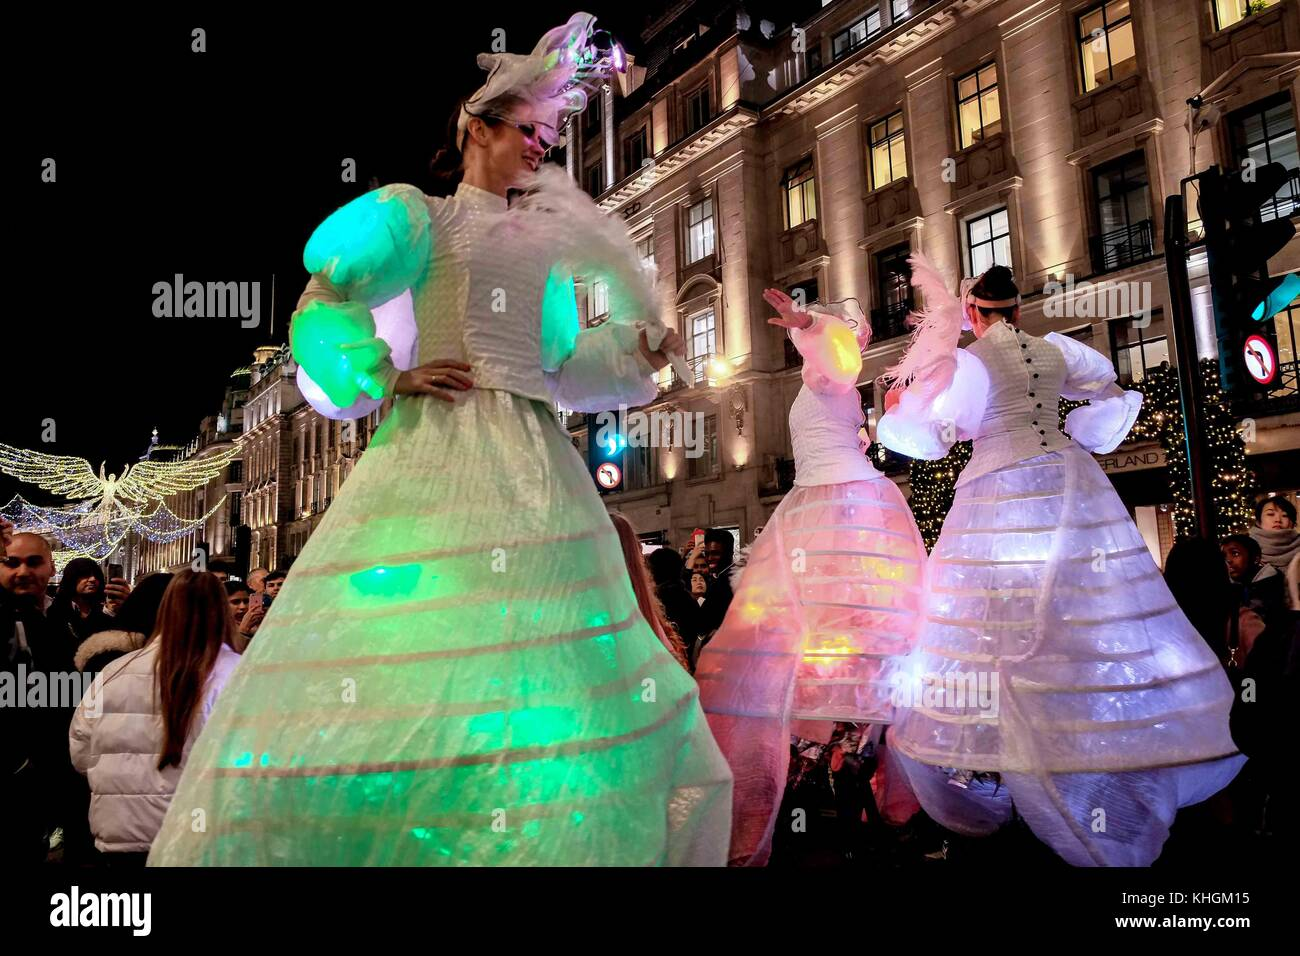 London, UK. 16th Nov, 2017. The largest lights installation in London with 300,000 LED lights 'The Spirit of Christmas' - Stock Image